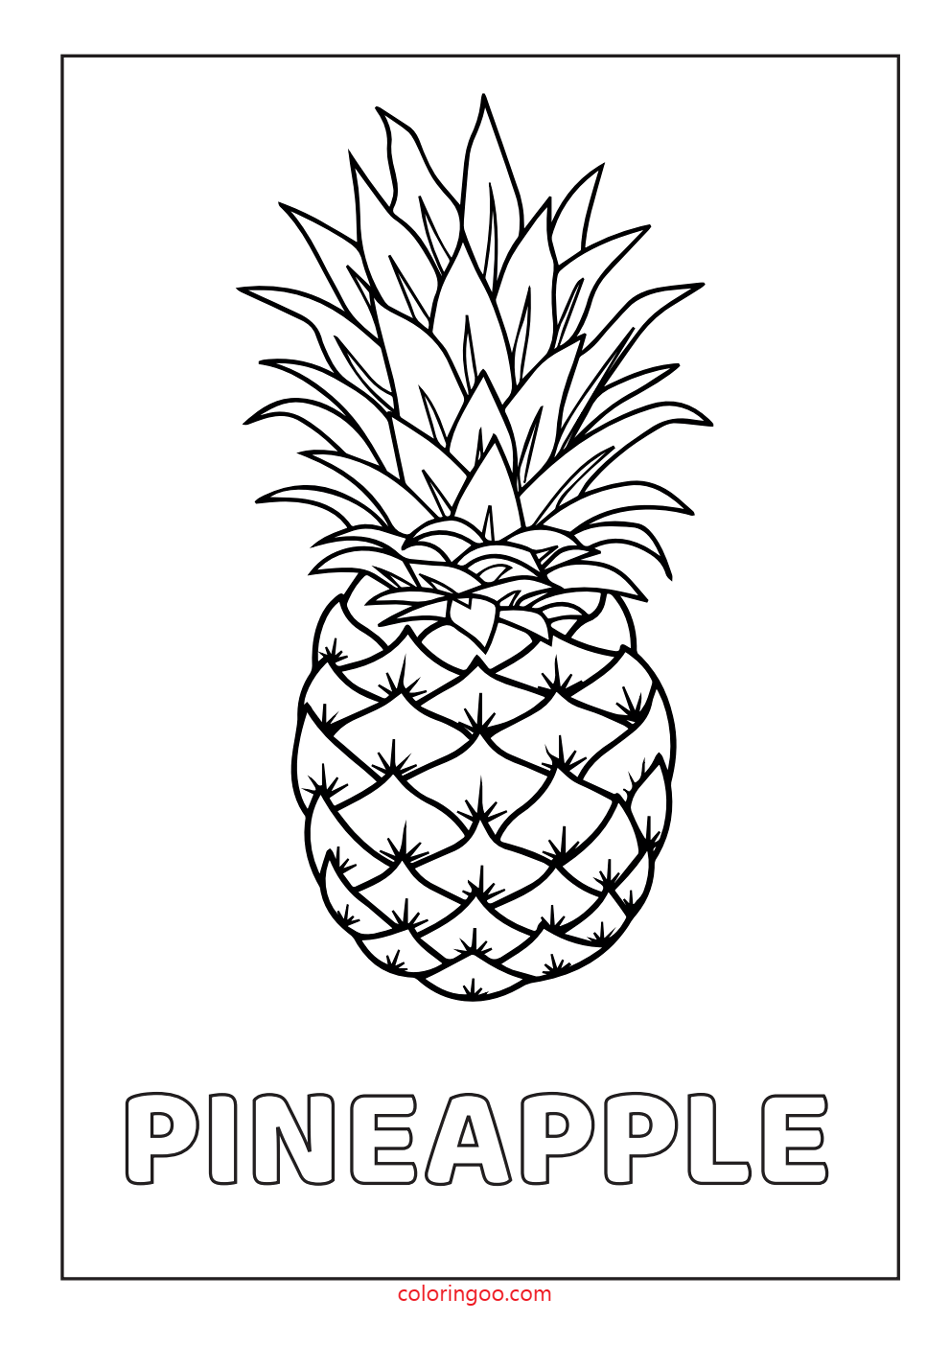 Pineapple Printable Coloring – Drawing Pages for Kids